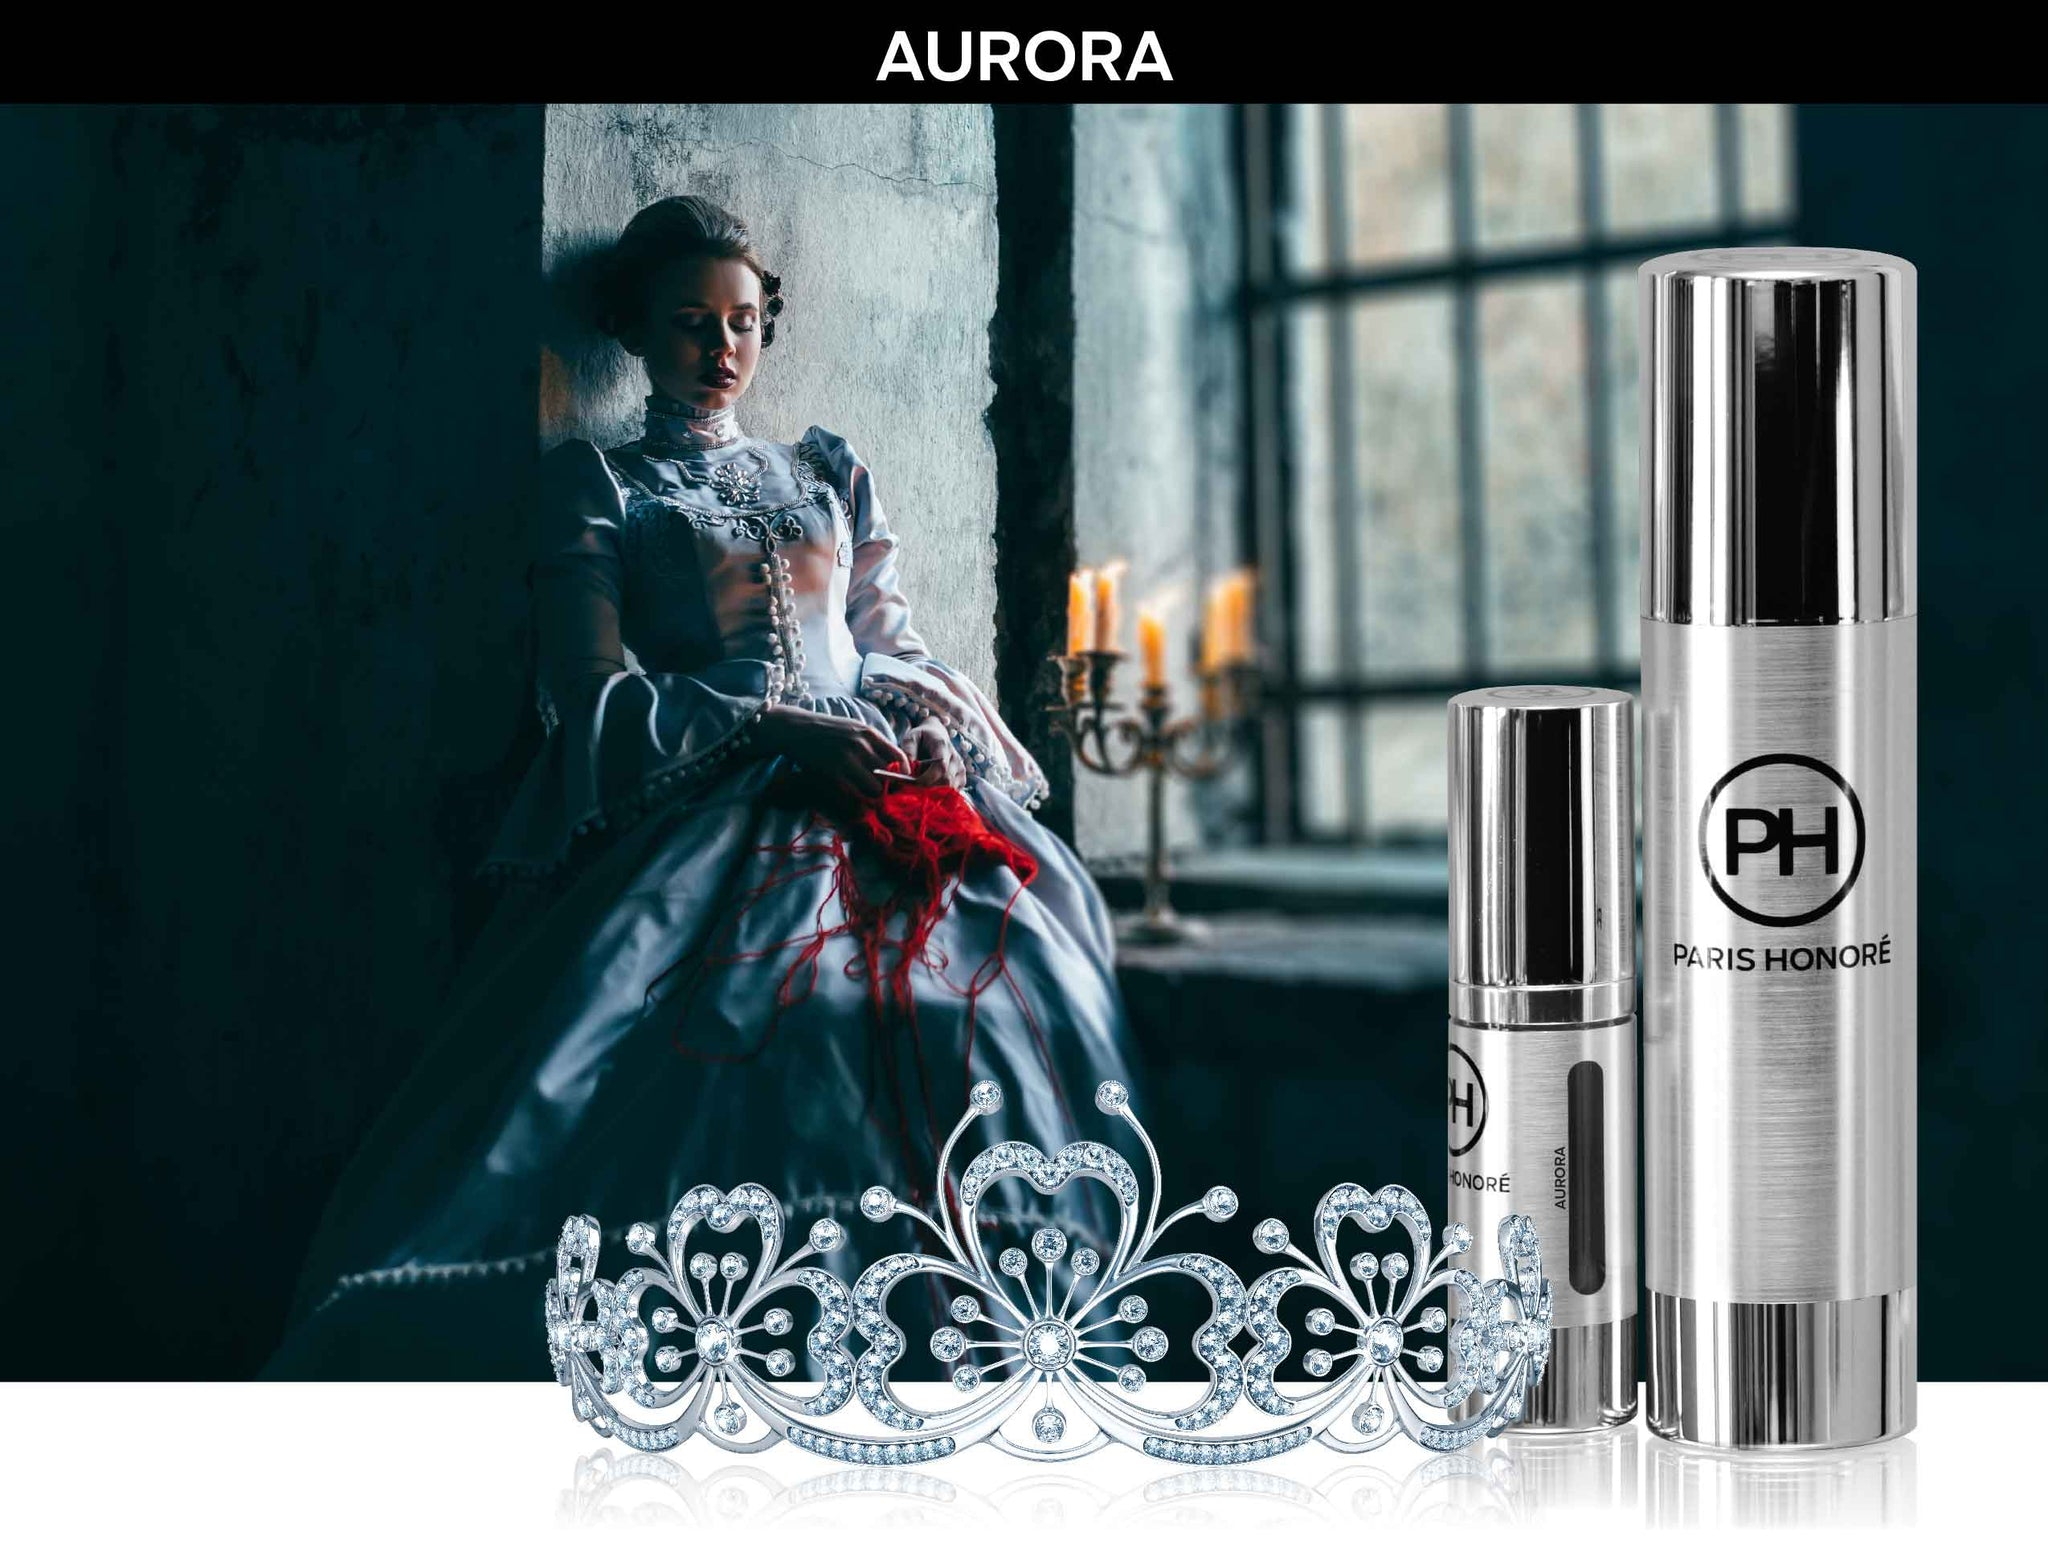 Aurora - a Limited Edition Luxe Fragrance by PH Luxury Organic Skincare